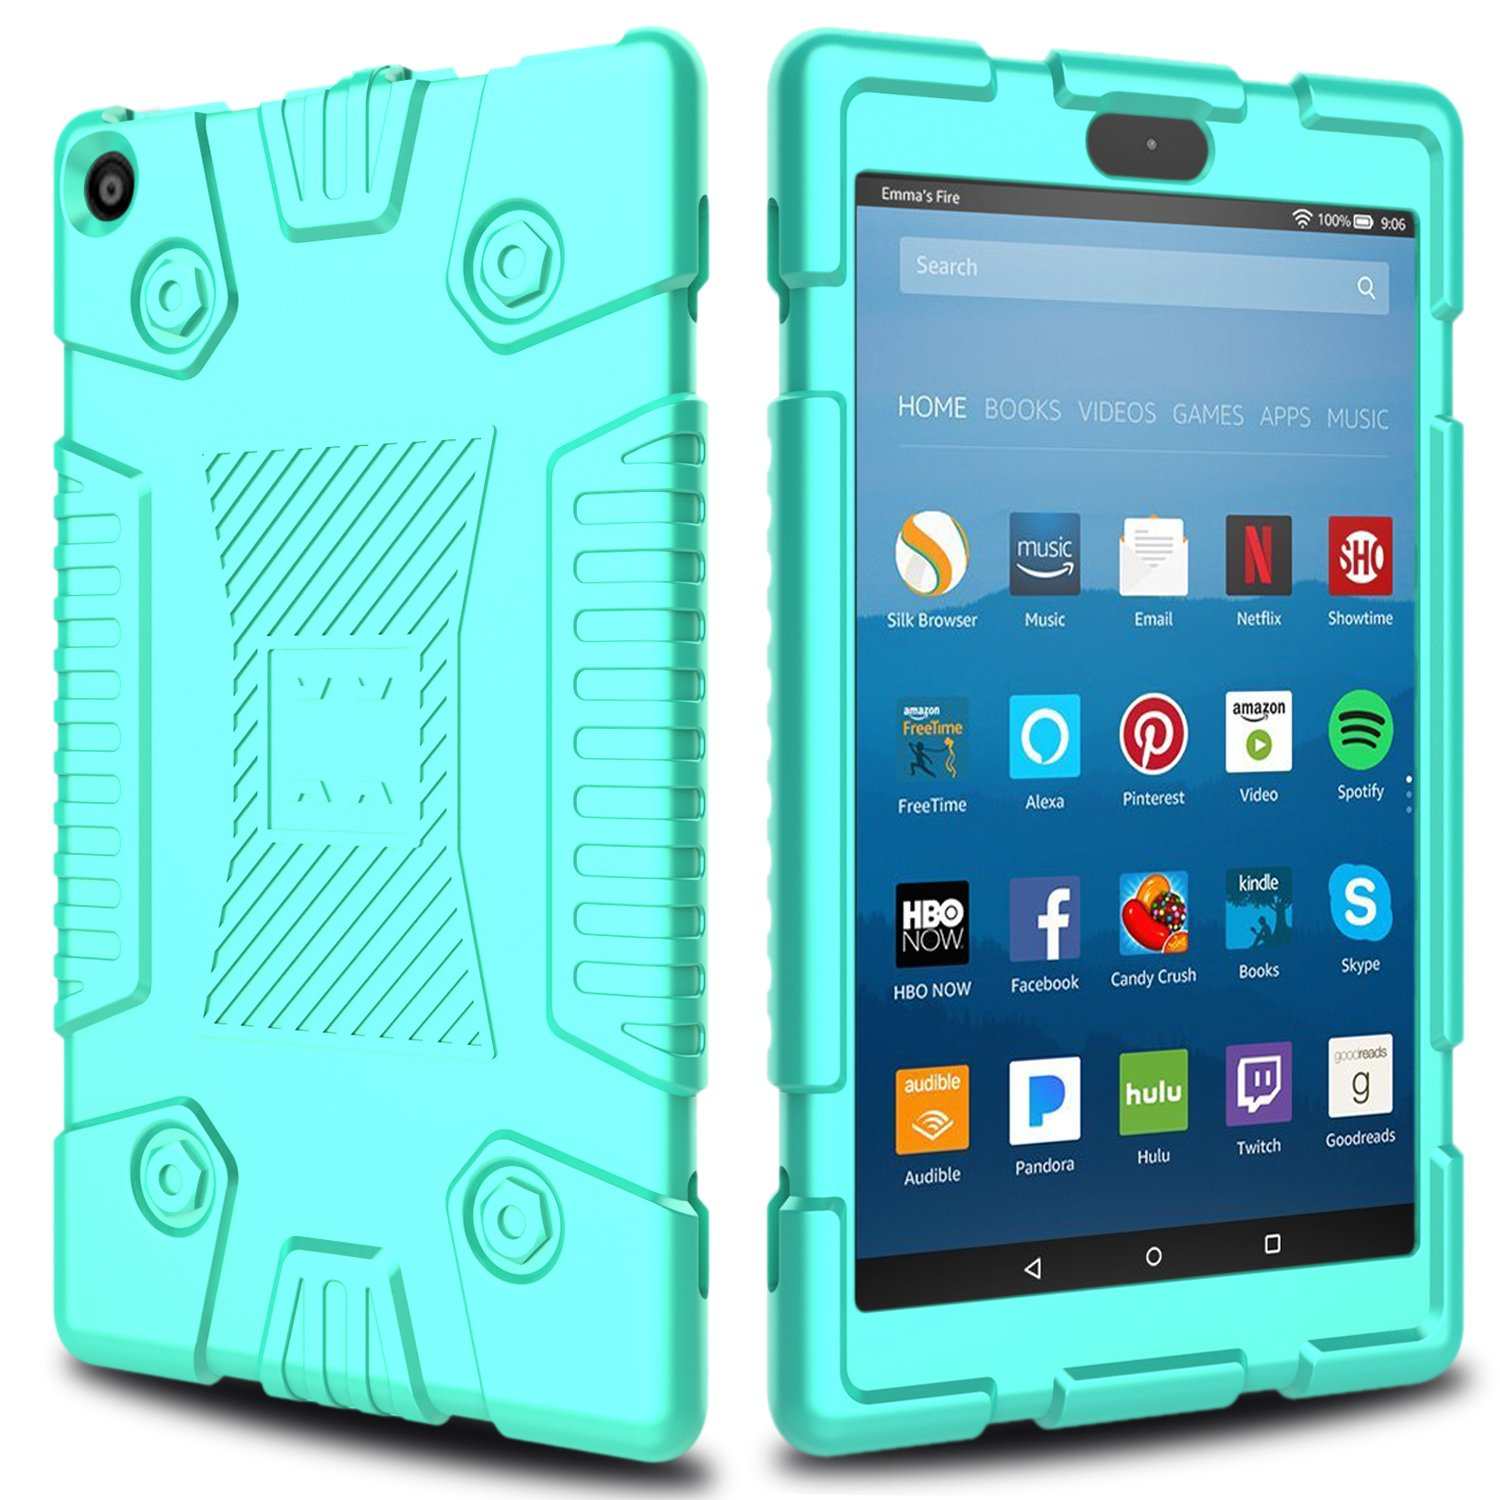 Elegant Choise for Fire 8 Tablet Case, Kindle Fire 8 Case, Soft Silicone Kid Friendly Light Weight Shockproof Protective Case Cover for All-New Amazon Kindle Fire HD 8 7th and 8th Generation (Green)